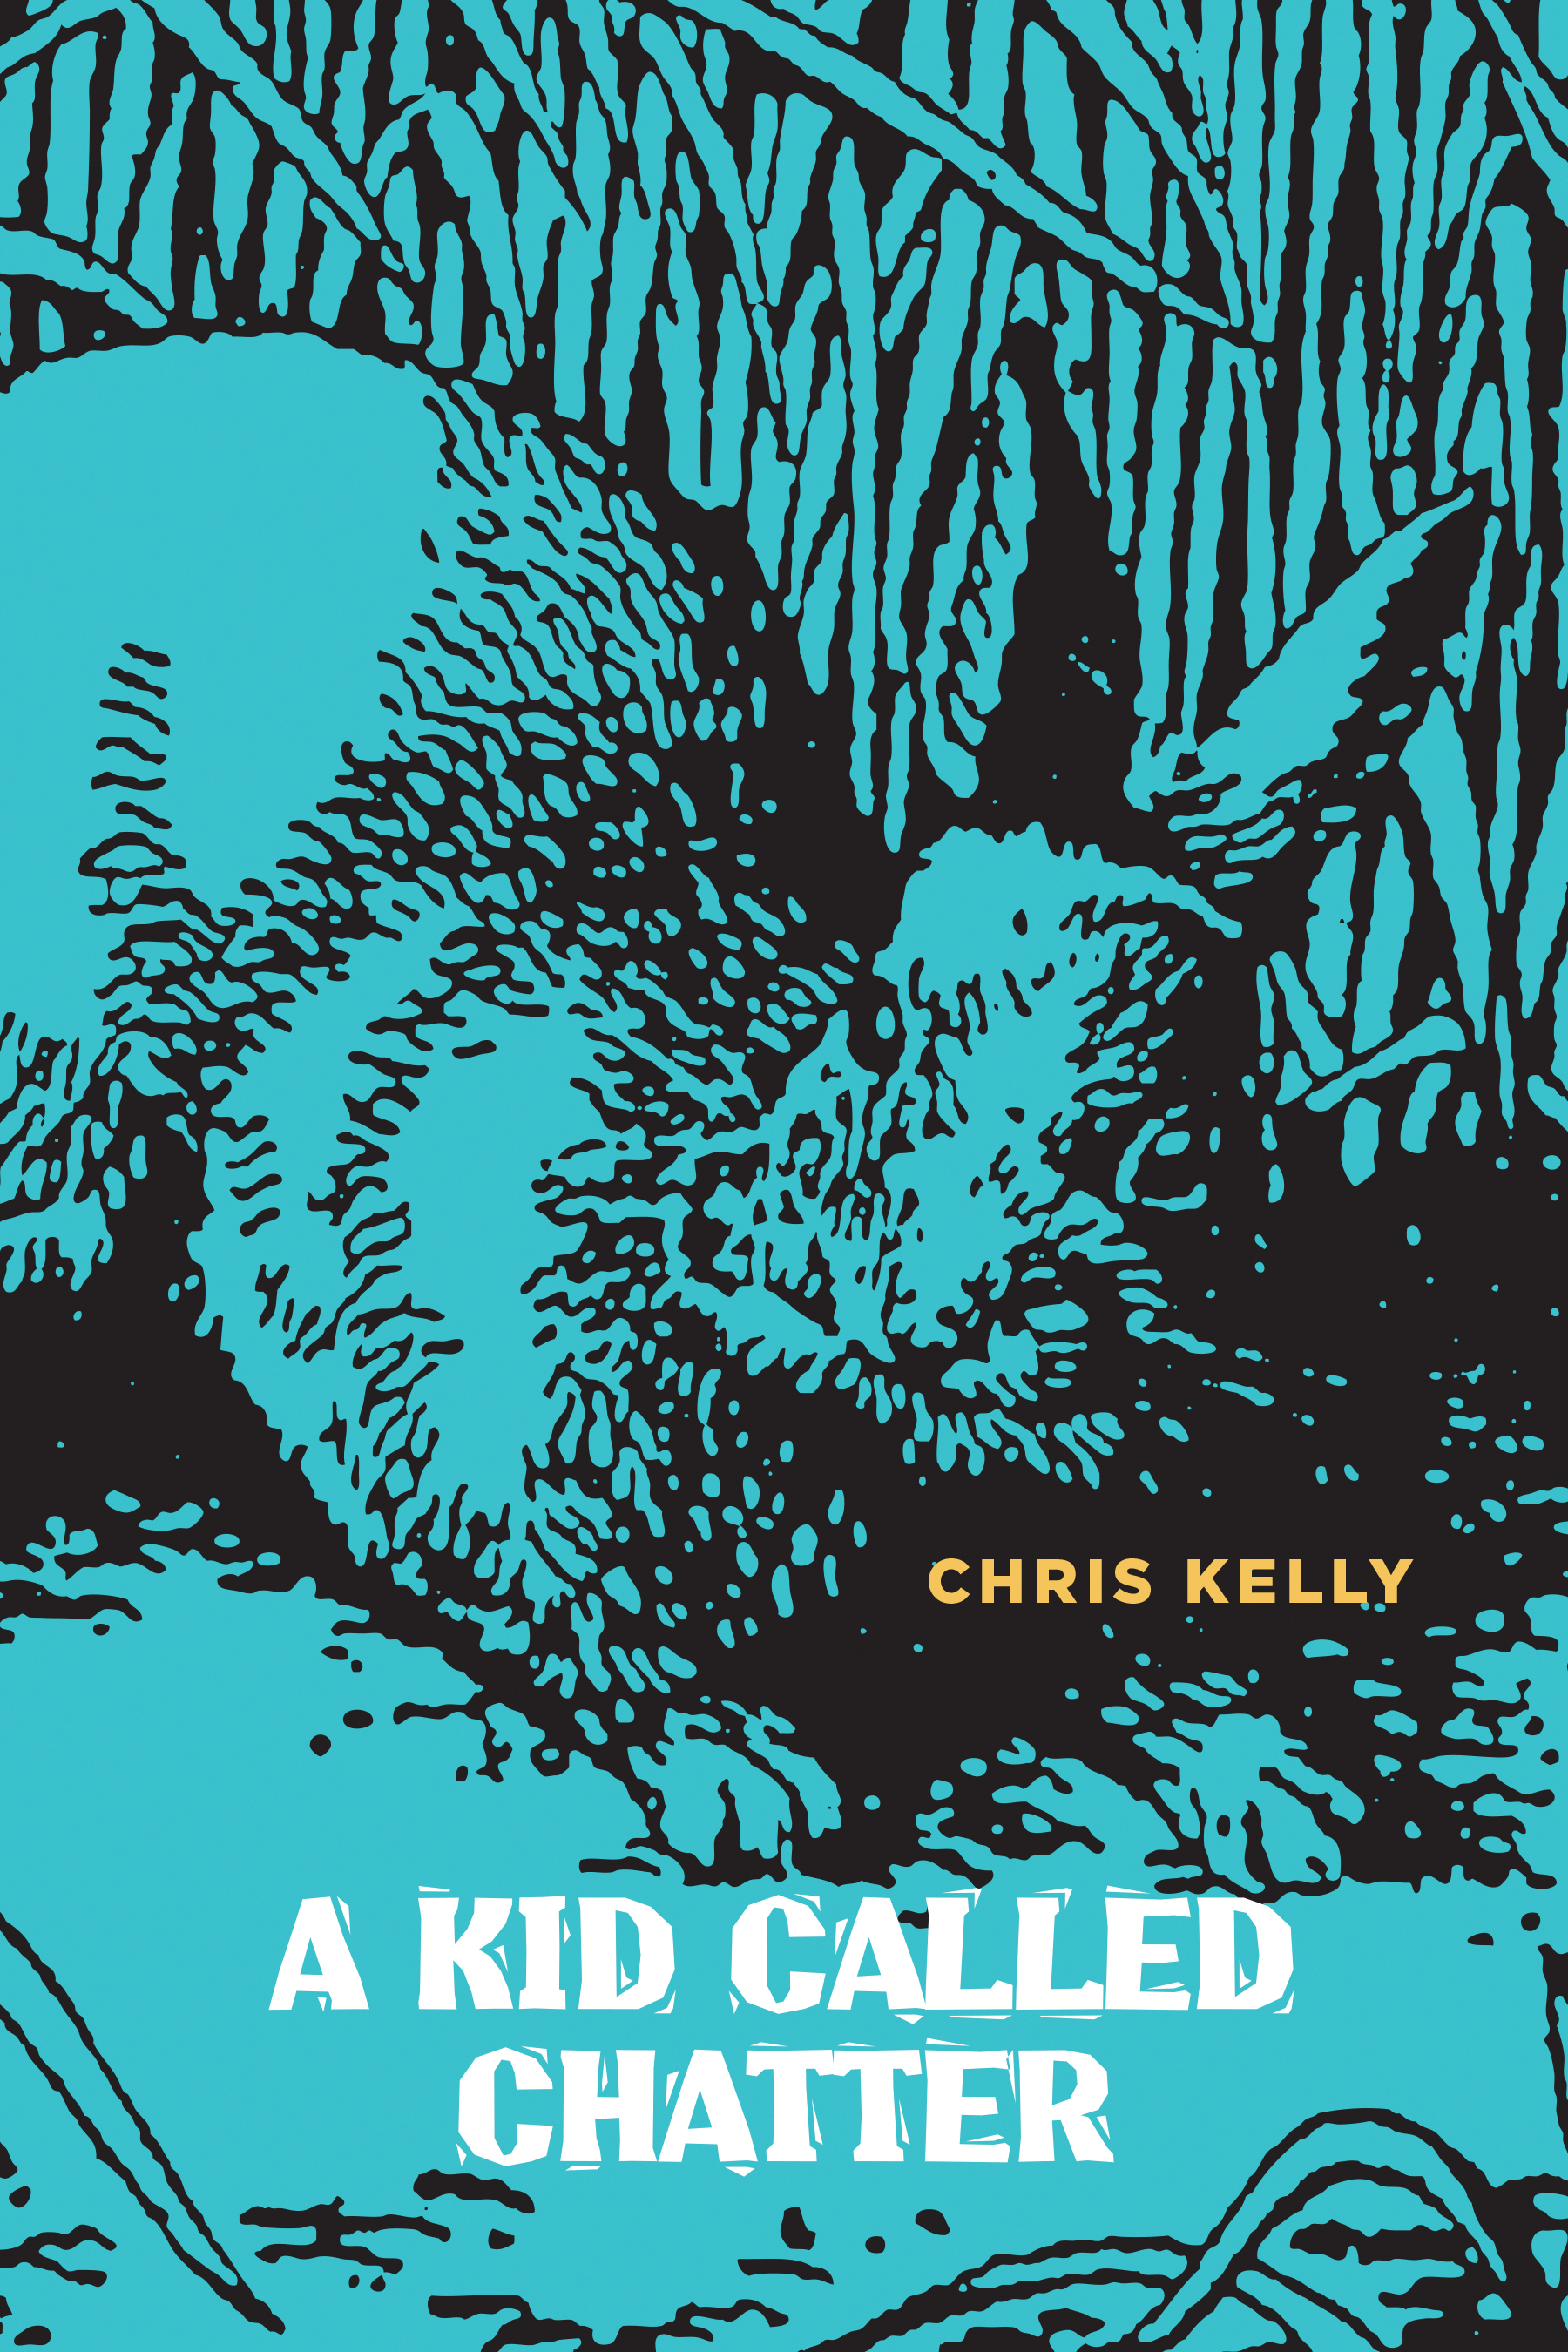 Book Cover Image for: Kid Called Chatter